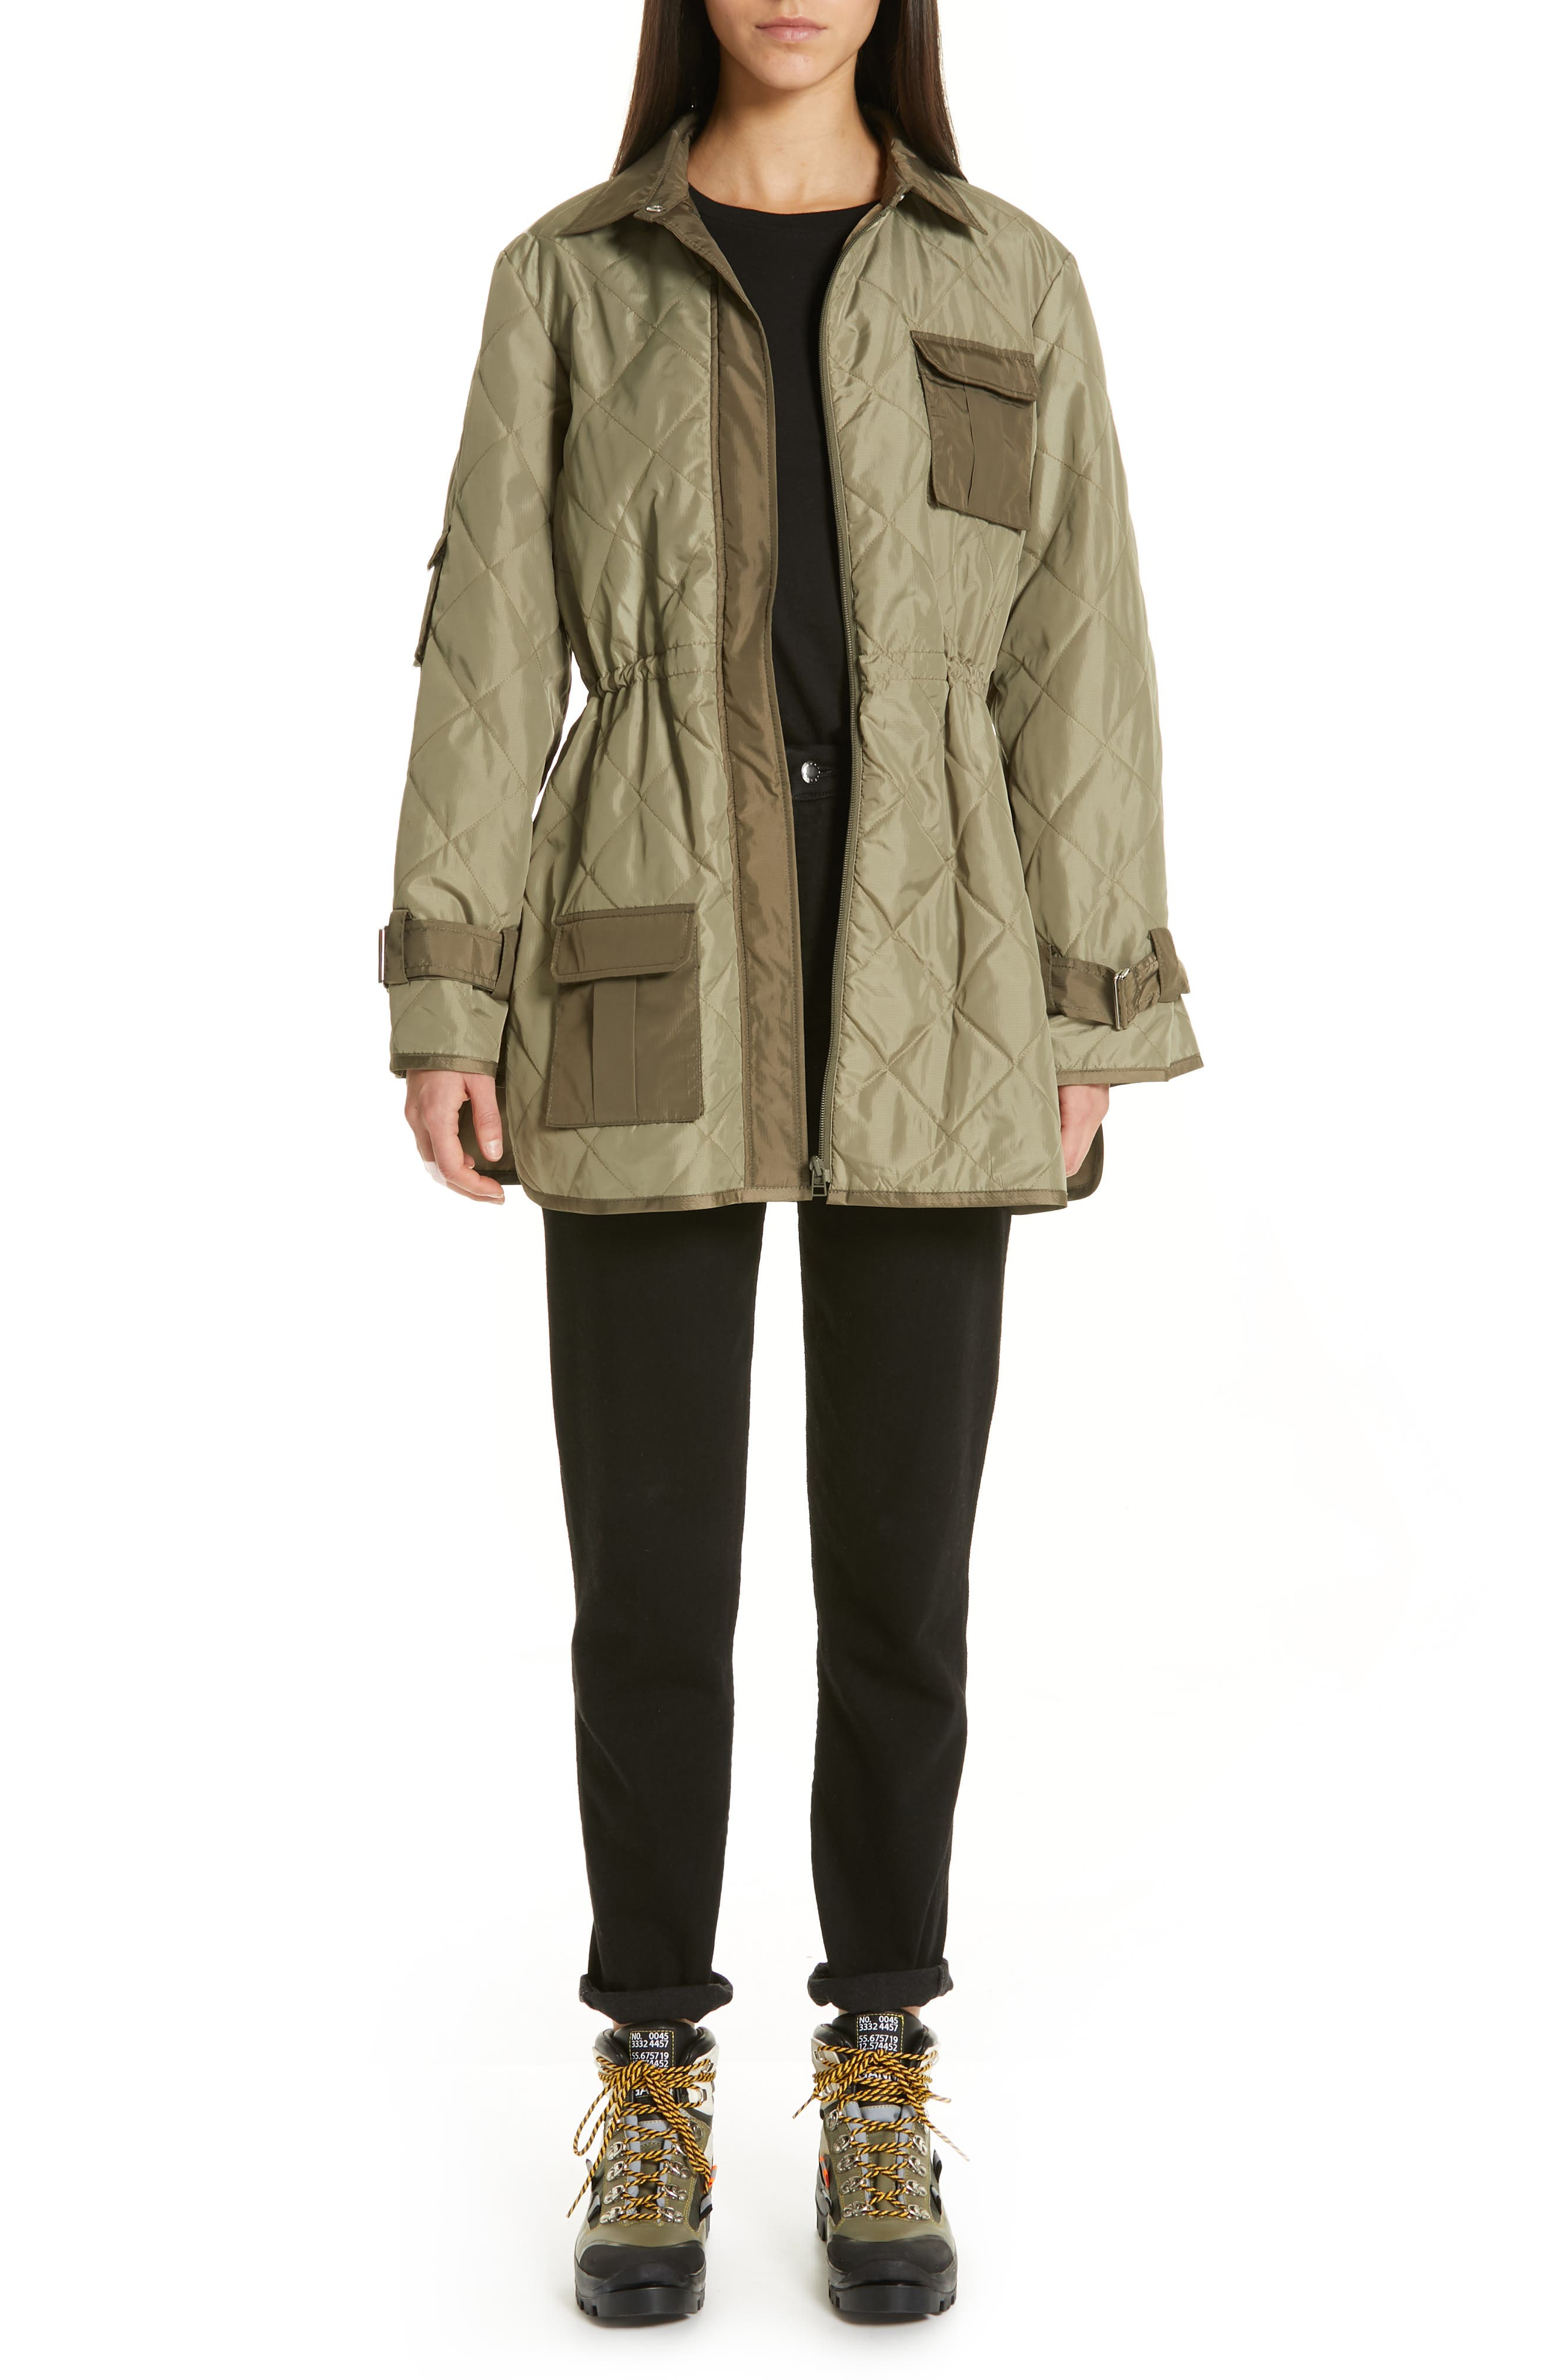 GANNI, Quilted Ripstop Jacket, Alternate thumbnail 7, color, ALOE